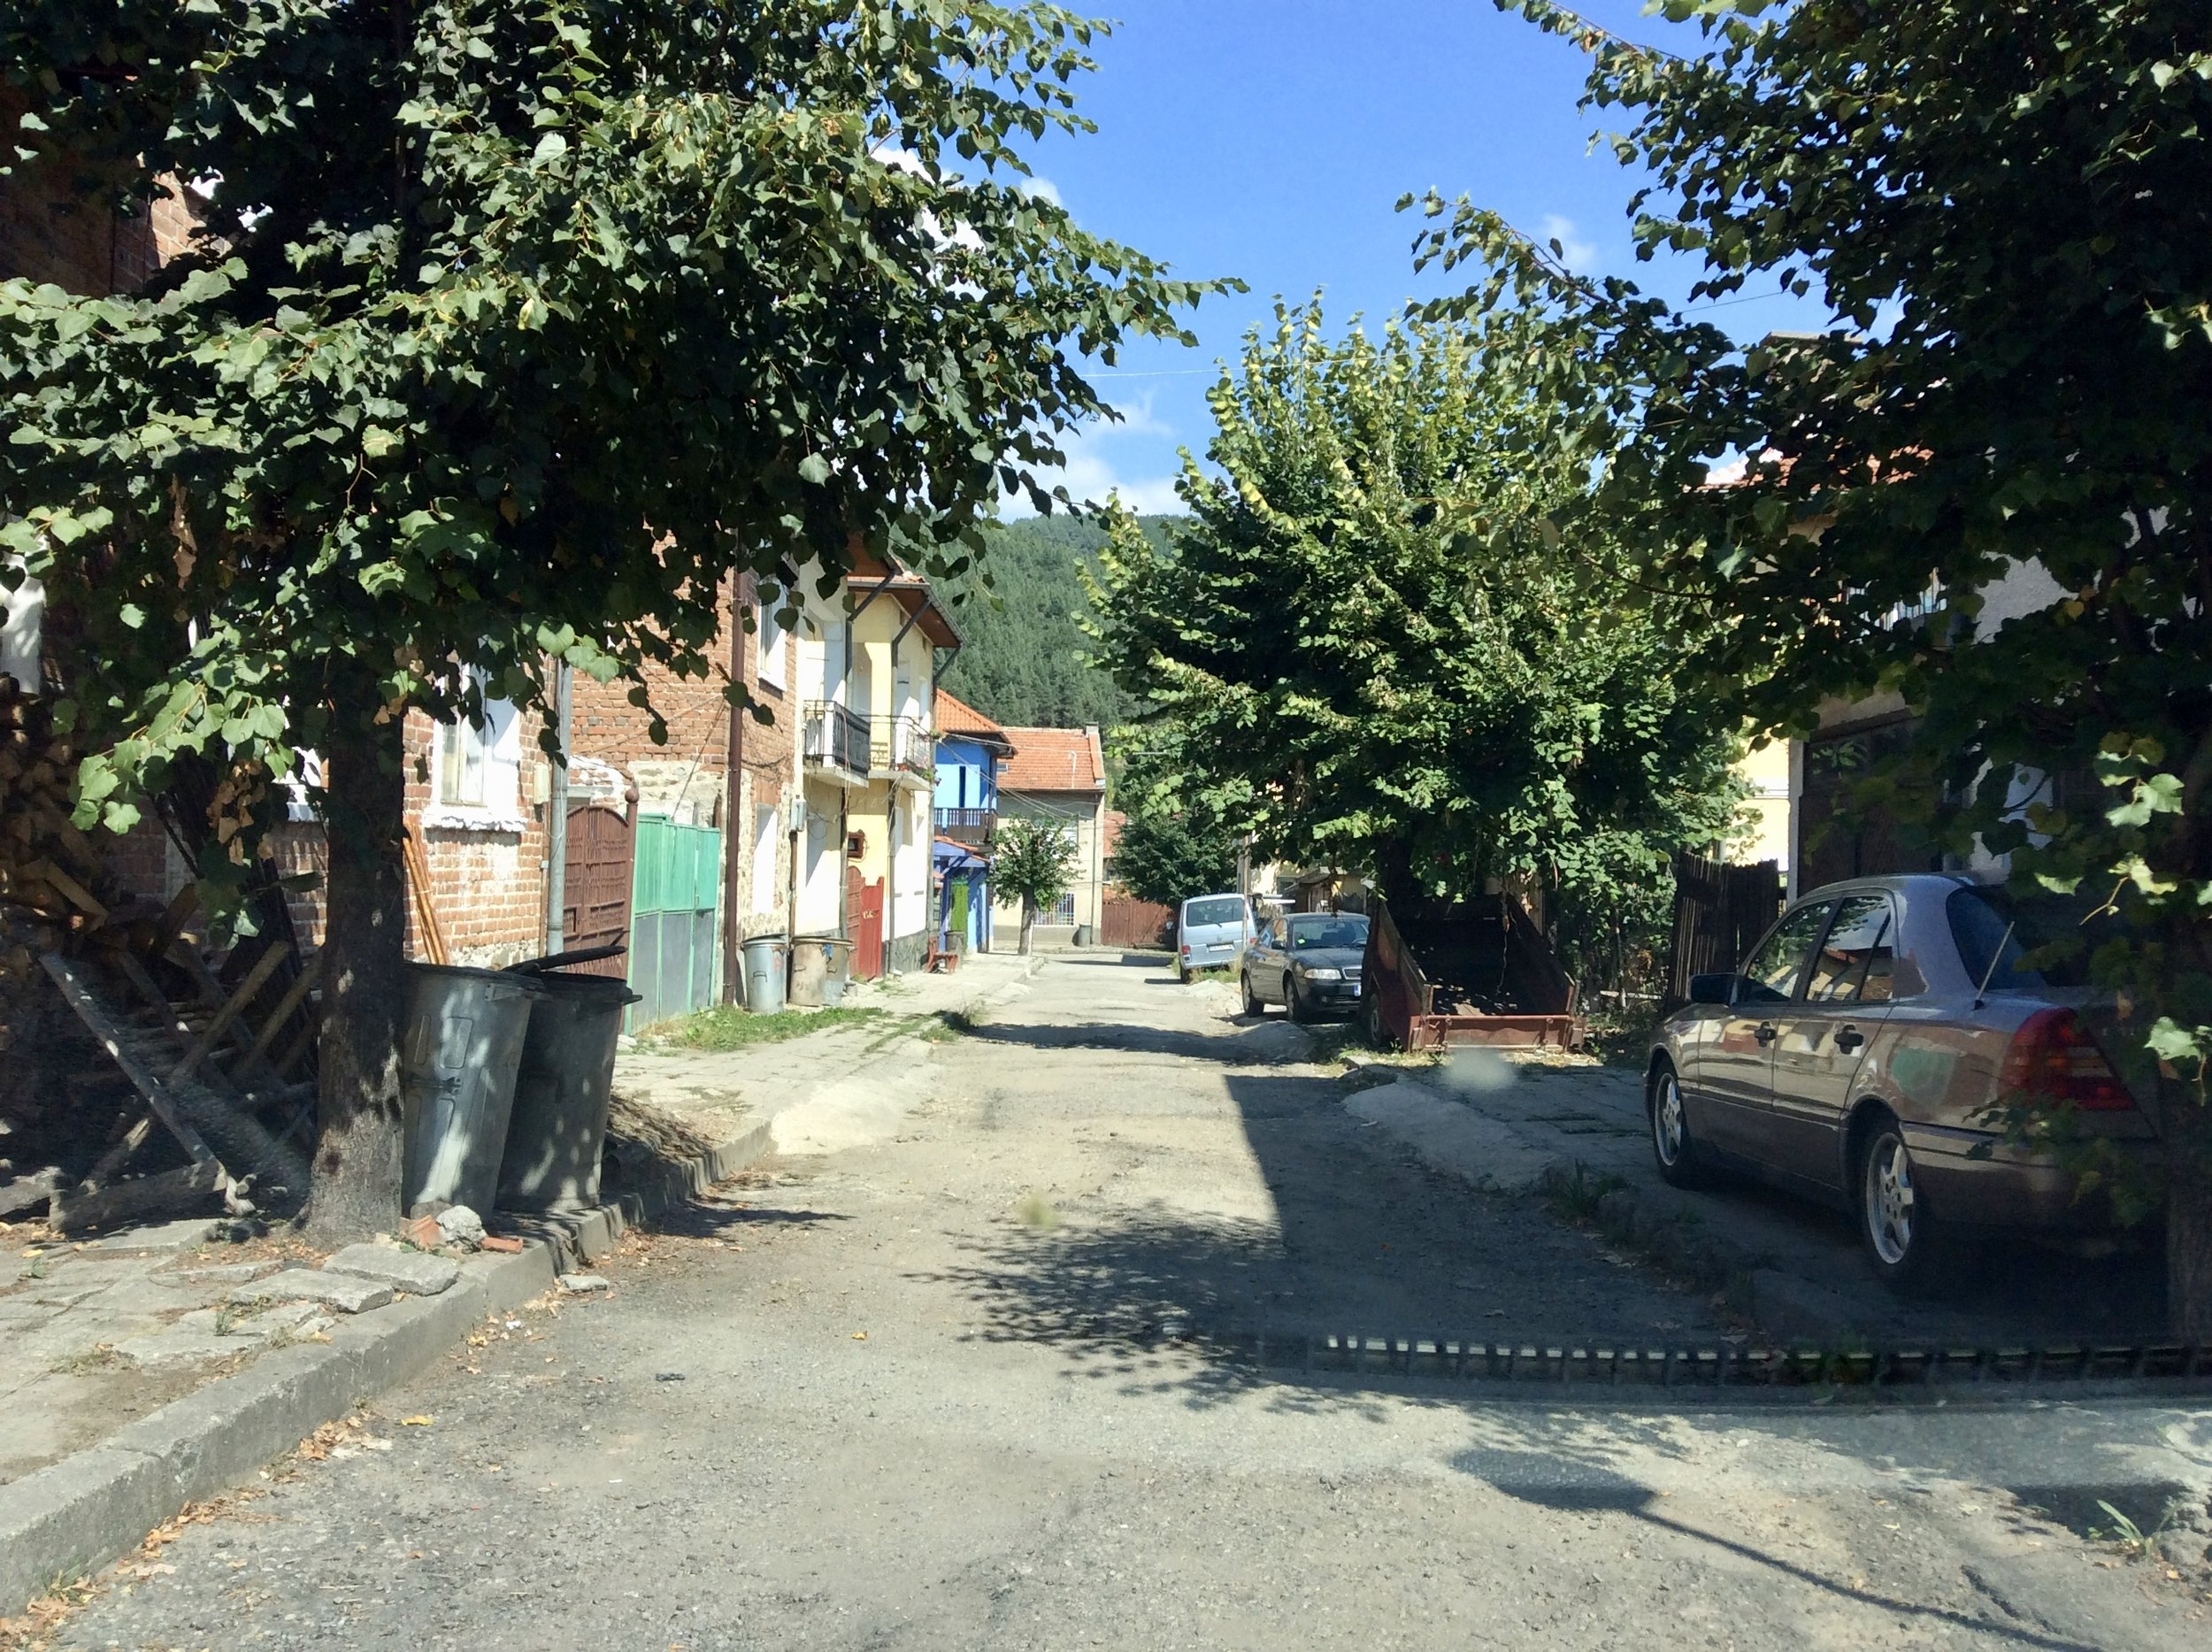 Driving Through Belitsa, Bulgaria